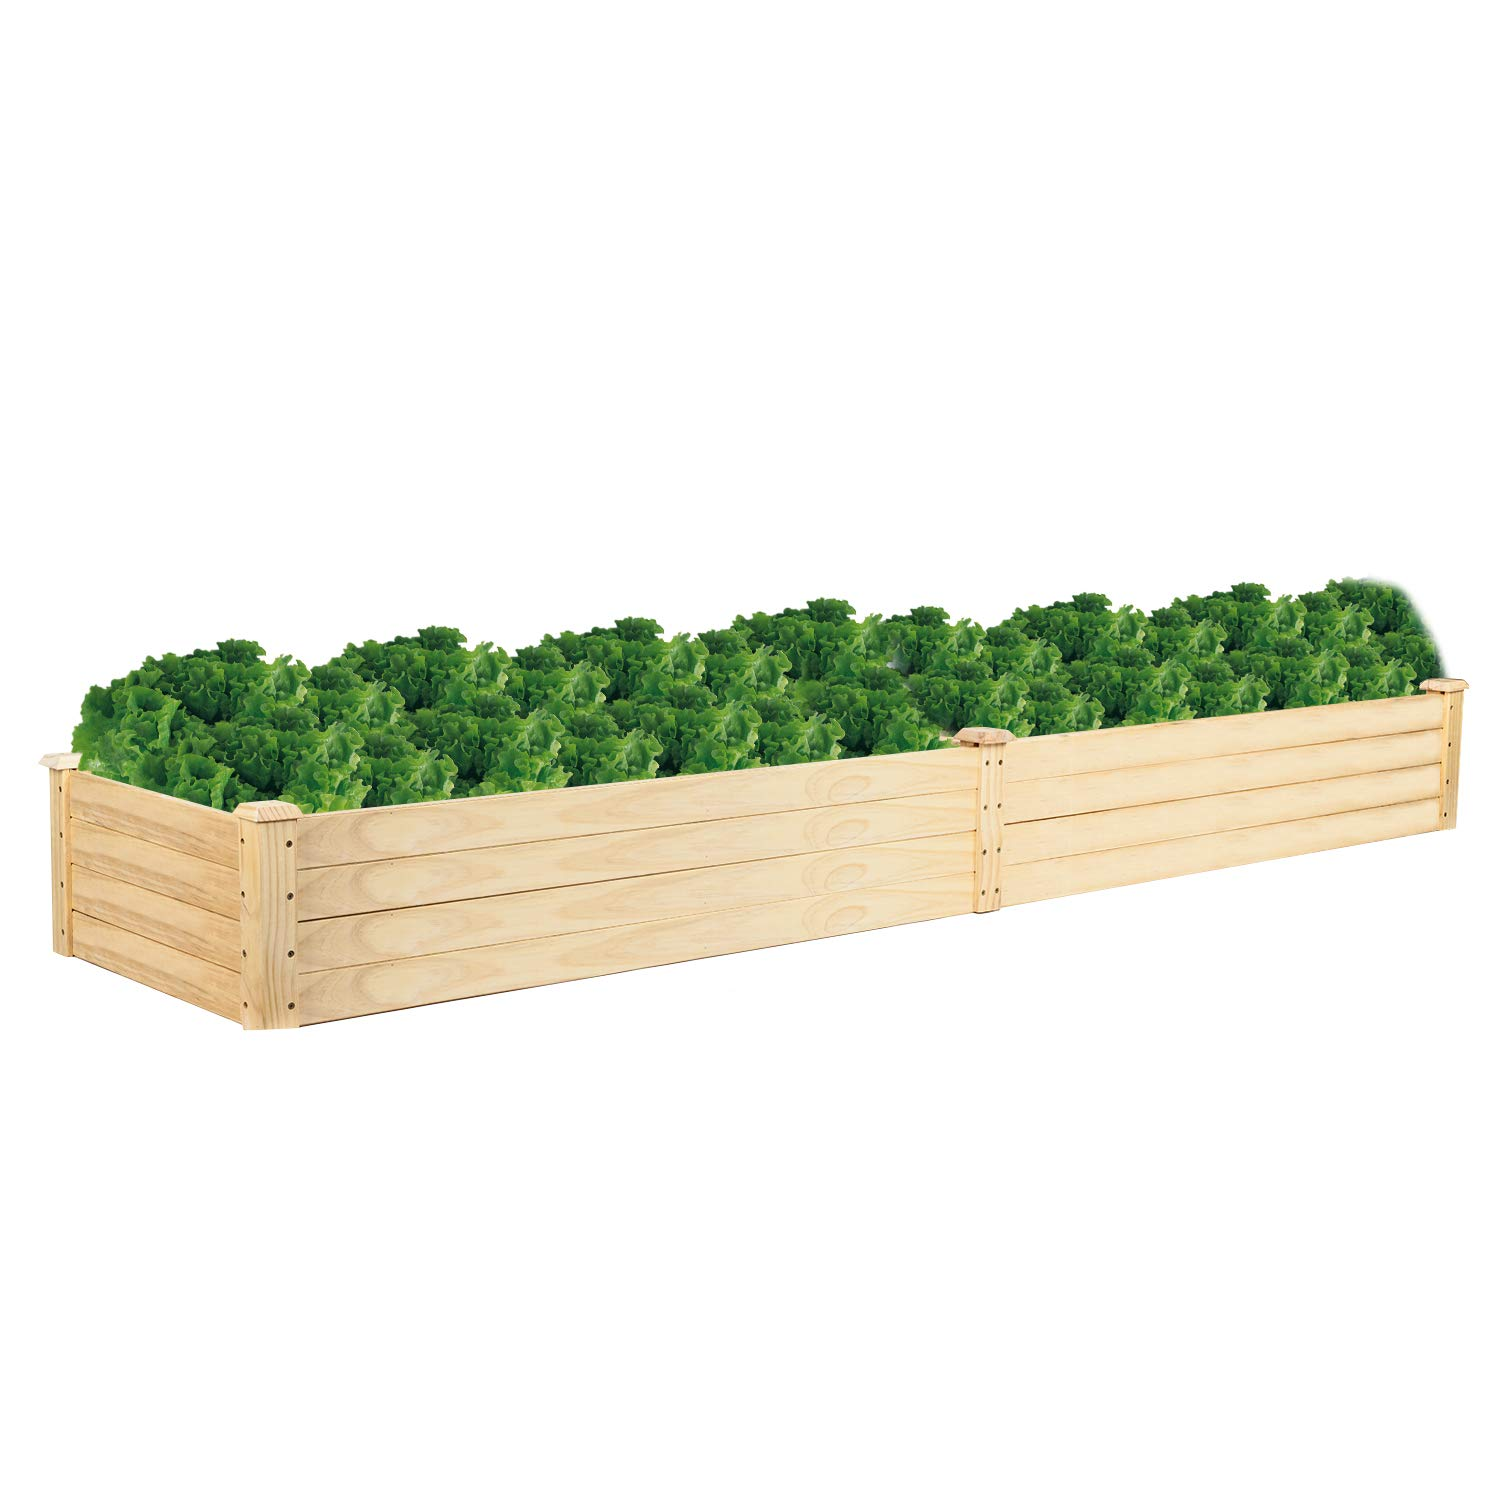 VINGLI Rectangular Raised Garden Bed, Pine Wood Outdoor Patio Backyard Pots Planter for Vegetables Fruits Potato Onion Flower 96Inch x 24Inch x 10Inch